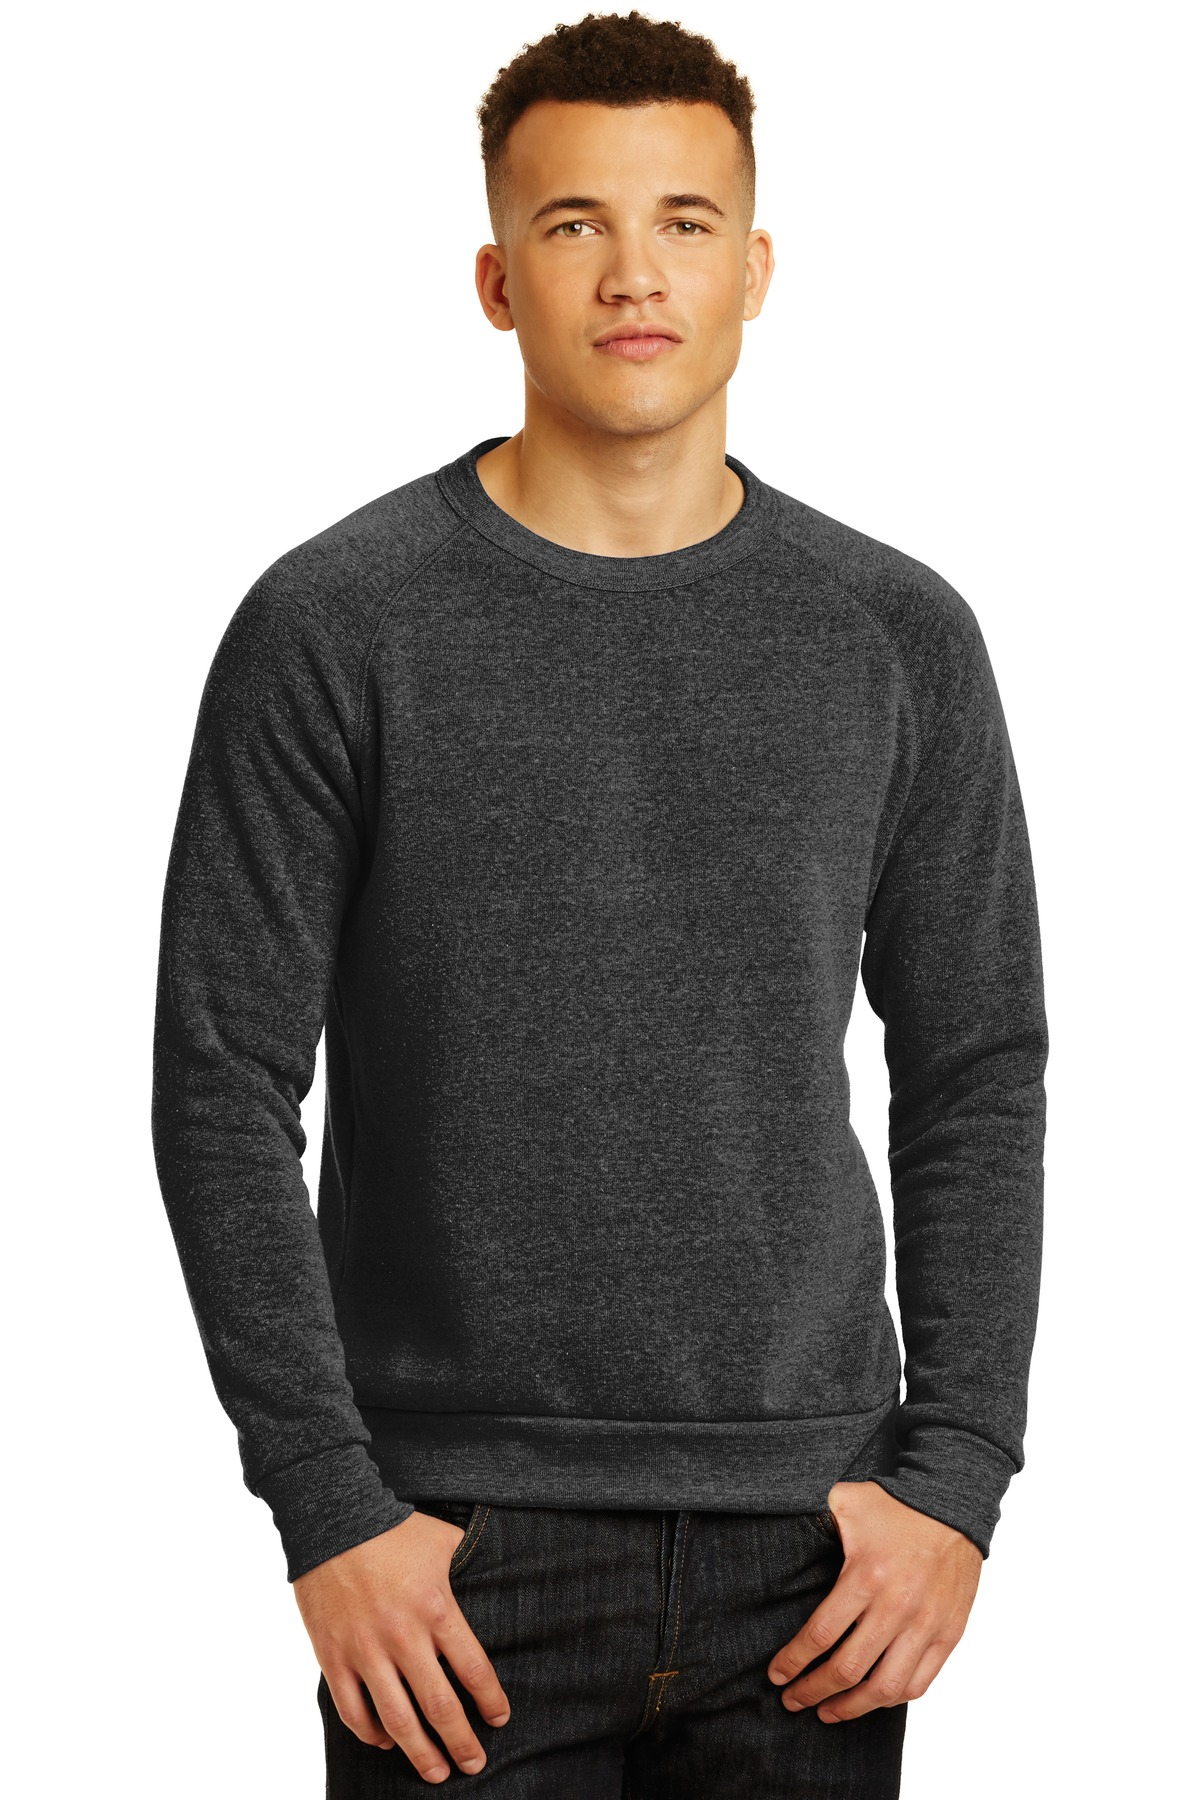 Alternative Champ Eco ™ -Fleece Sweatshirt. AA9575 - Eco Black